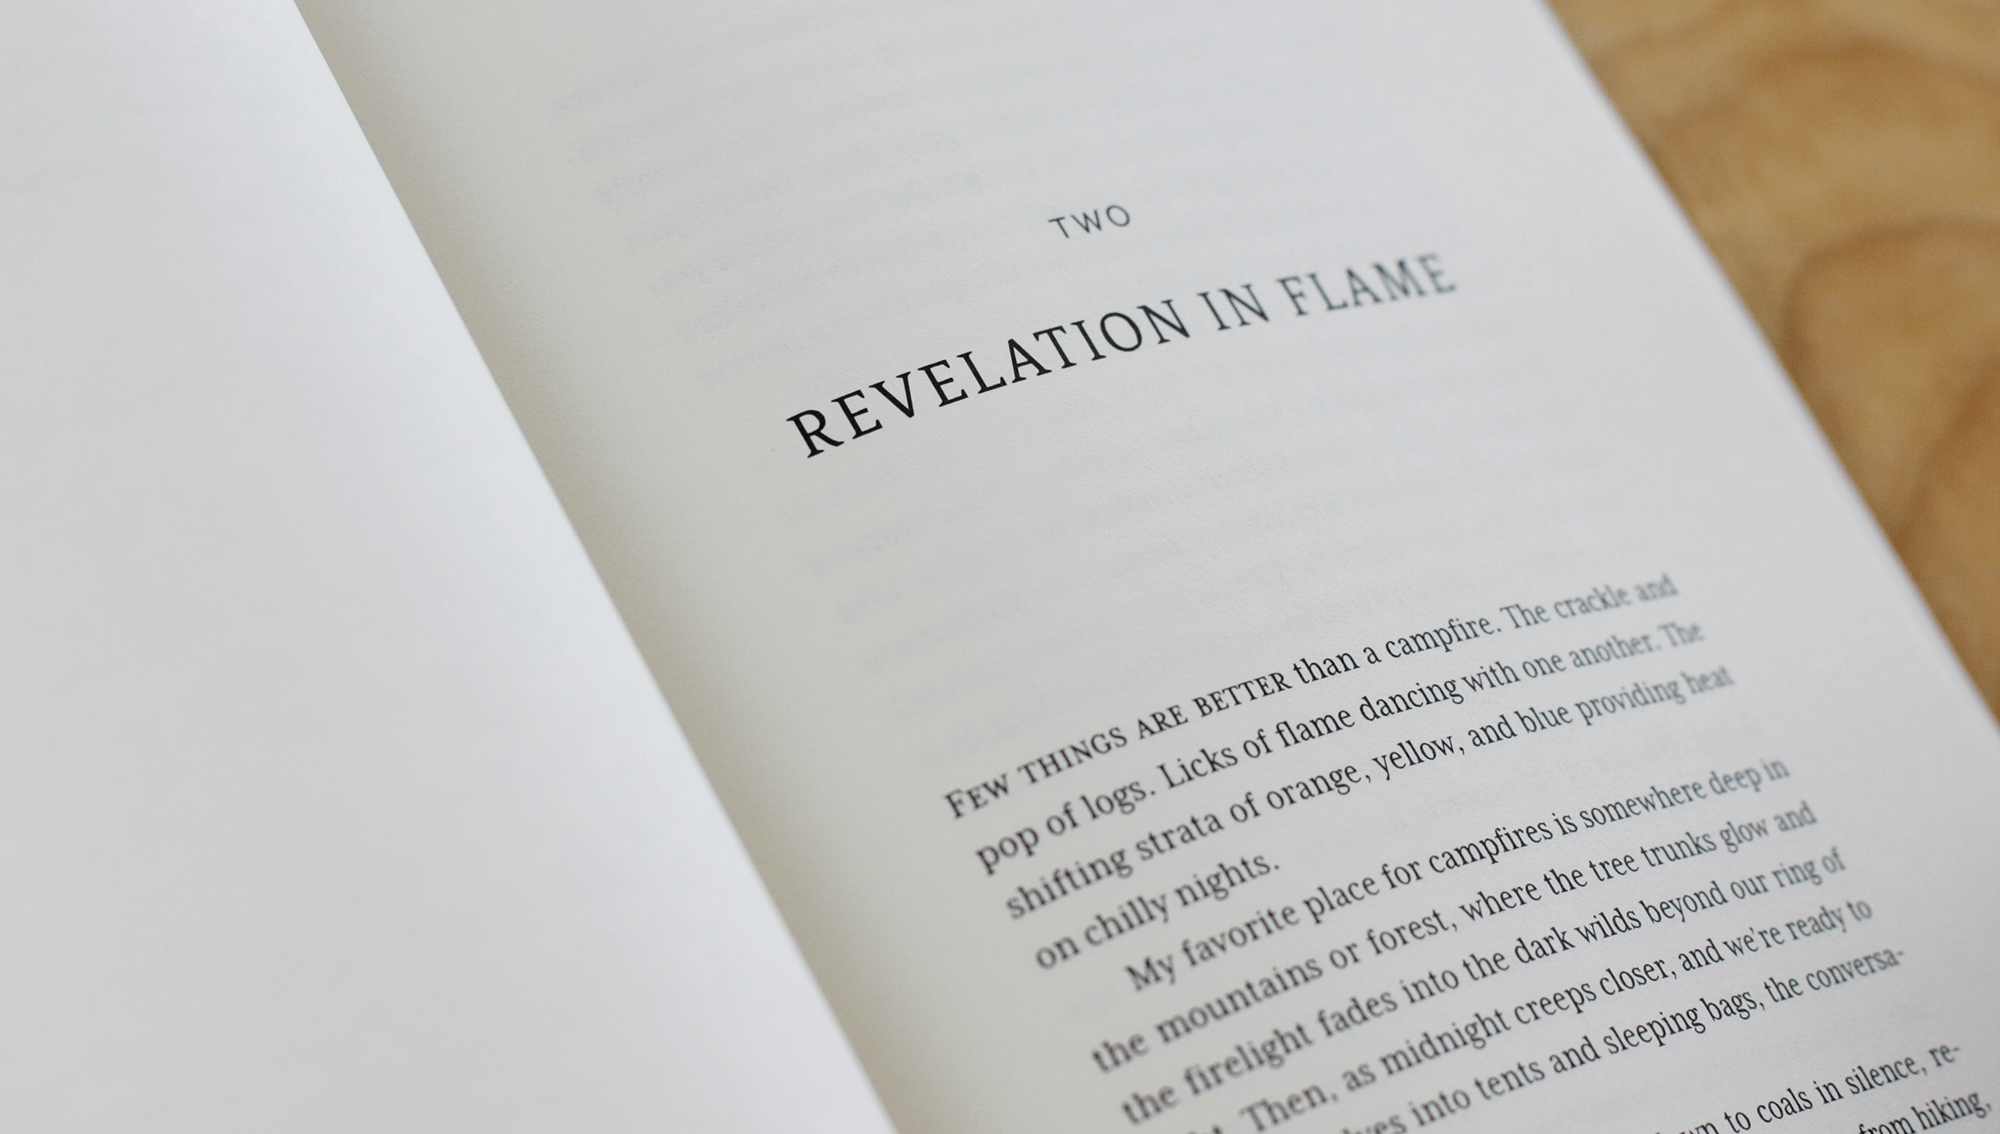 Chapter open–Revelation in flame